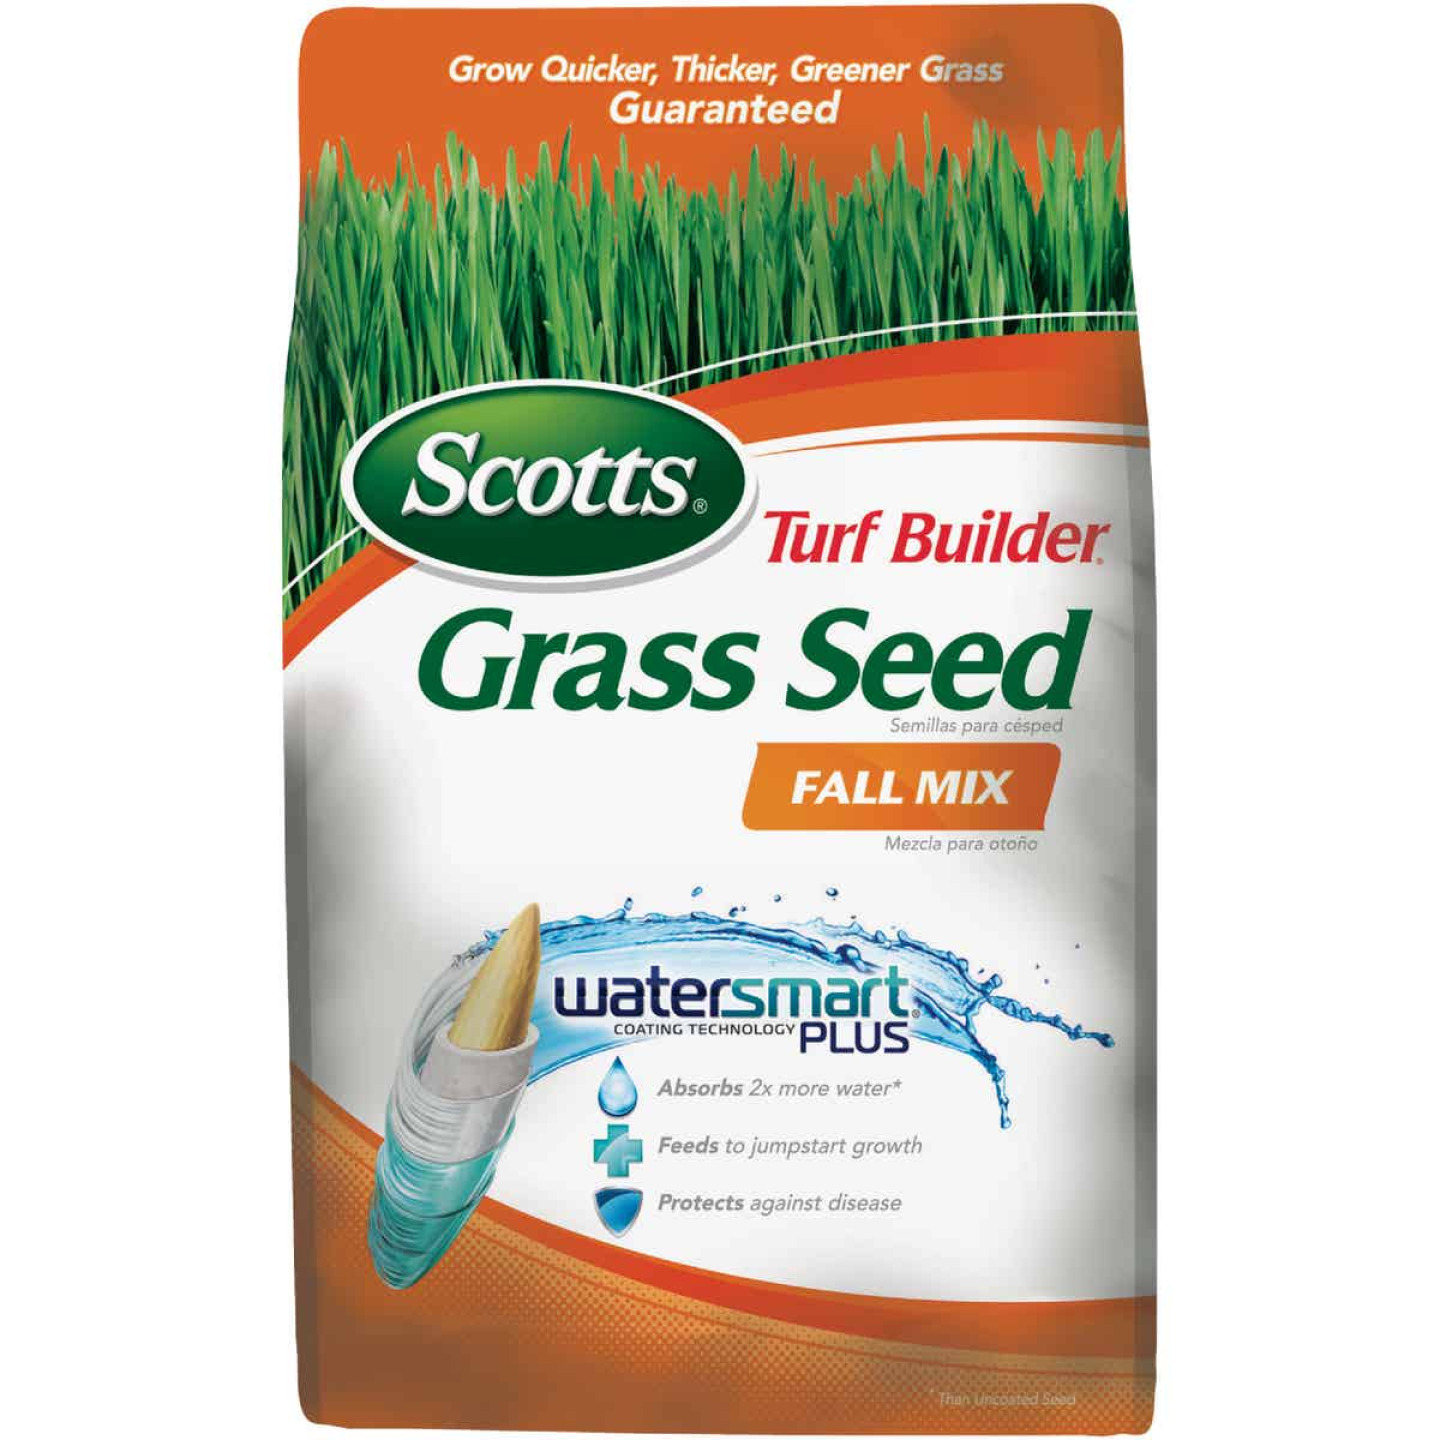 Scotts Turf Builder 3 Lb. Up To 1200 Sq. Ft. Coverage Thermal Blue KY Bluegrass Fall Mix Grass Seed Image 1